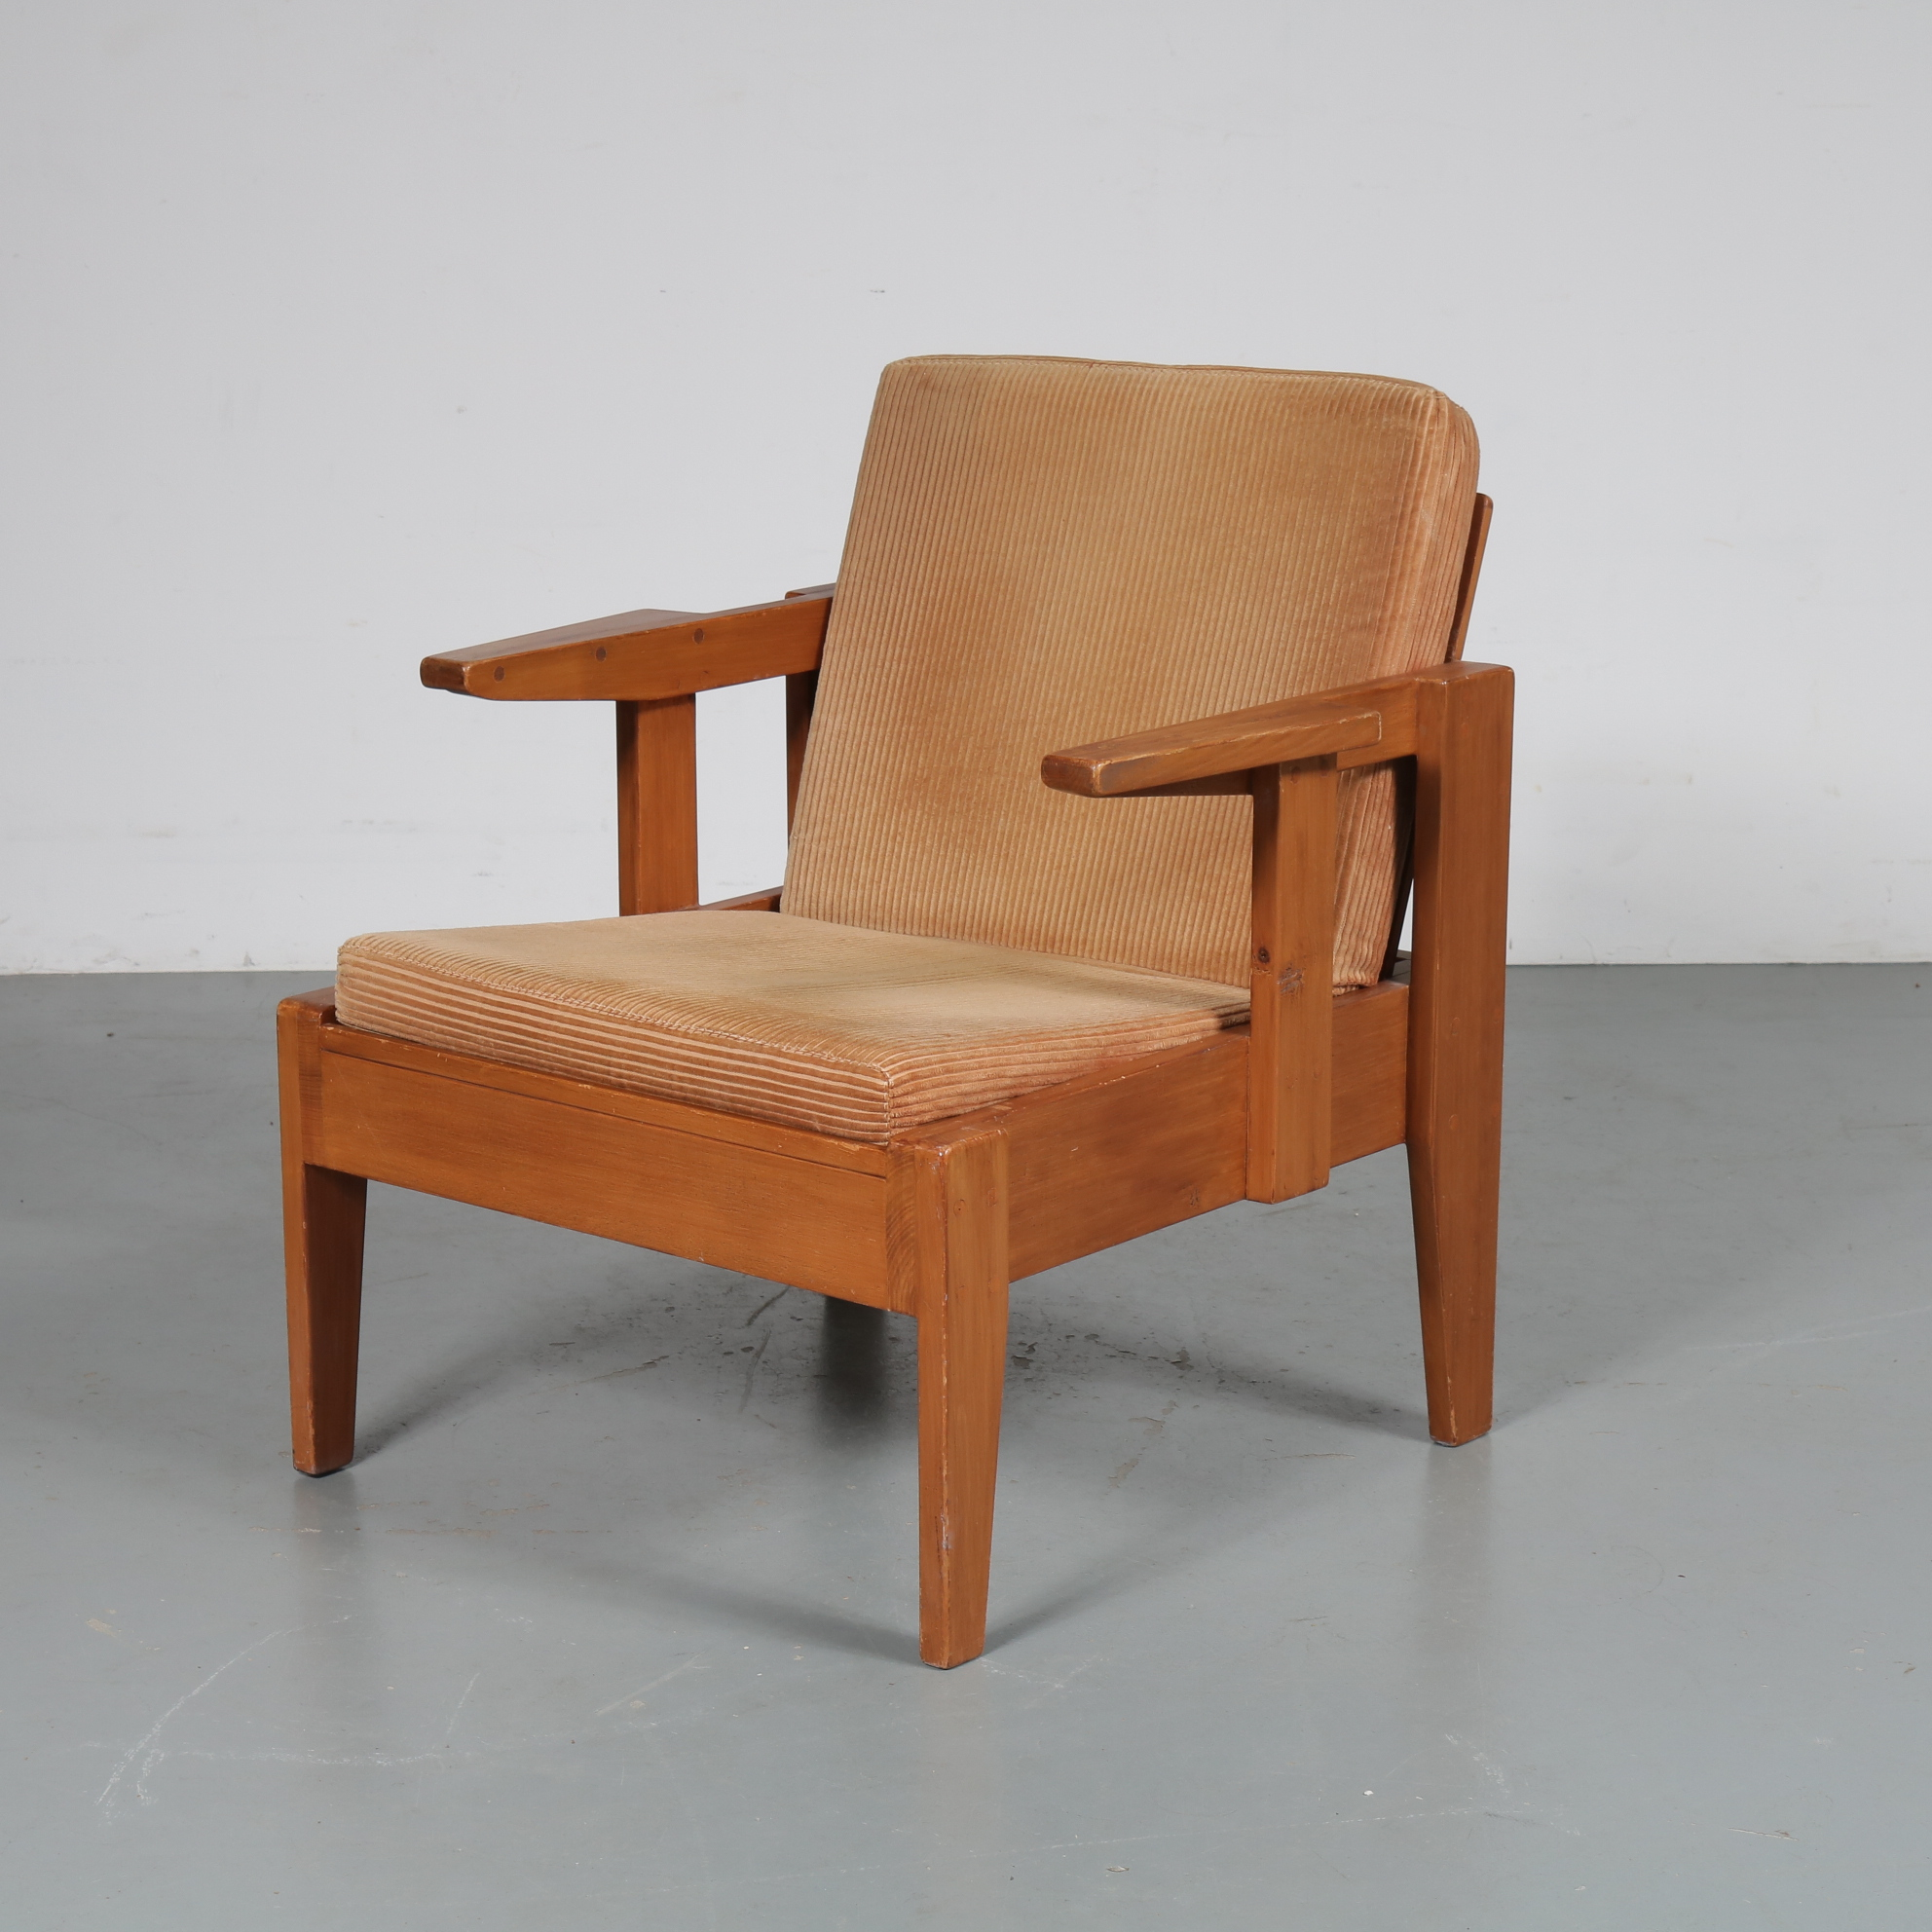 m23063 1950s Wooden easy chair in De Stijl design, beige ribcord fabric cushion Netherlands